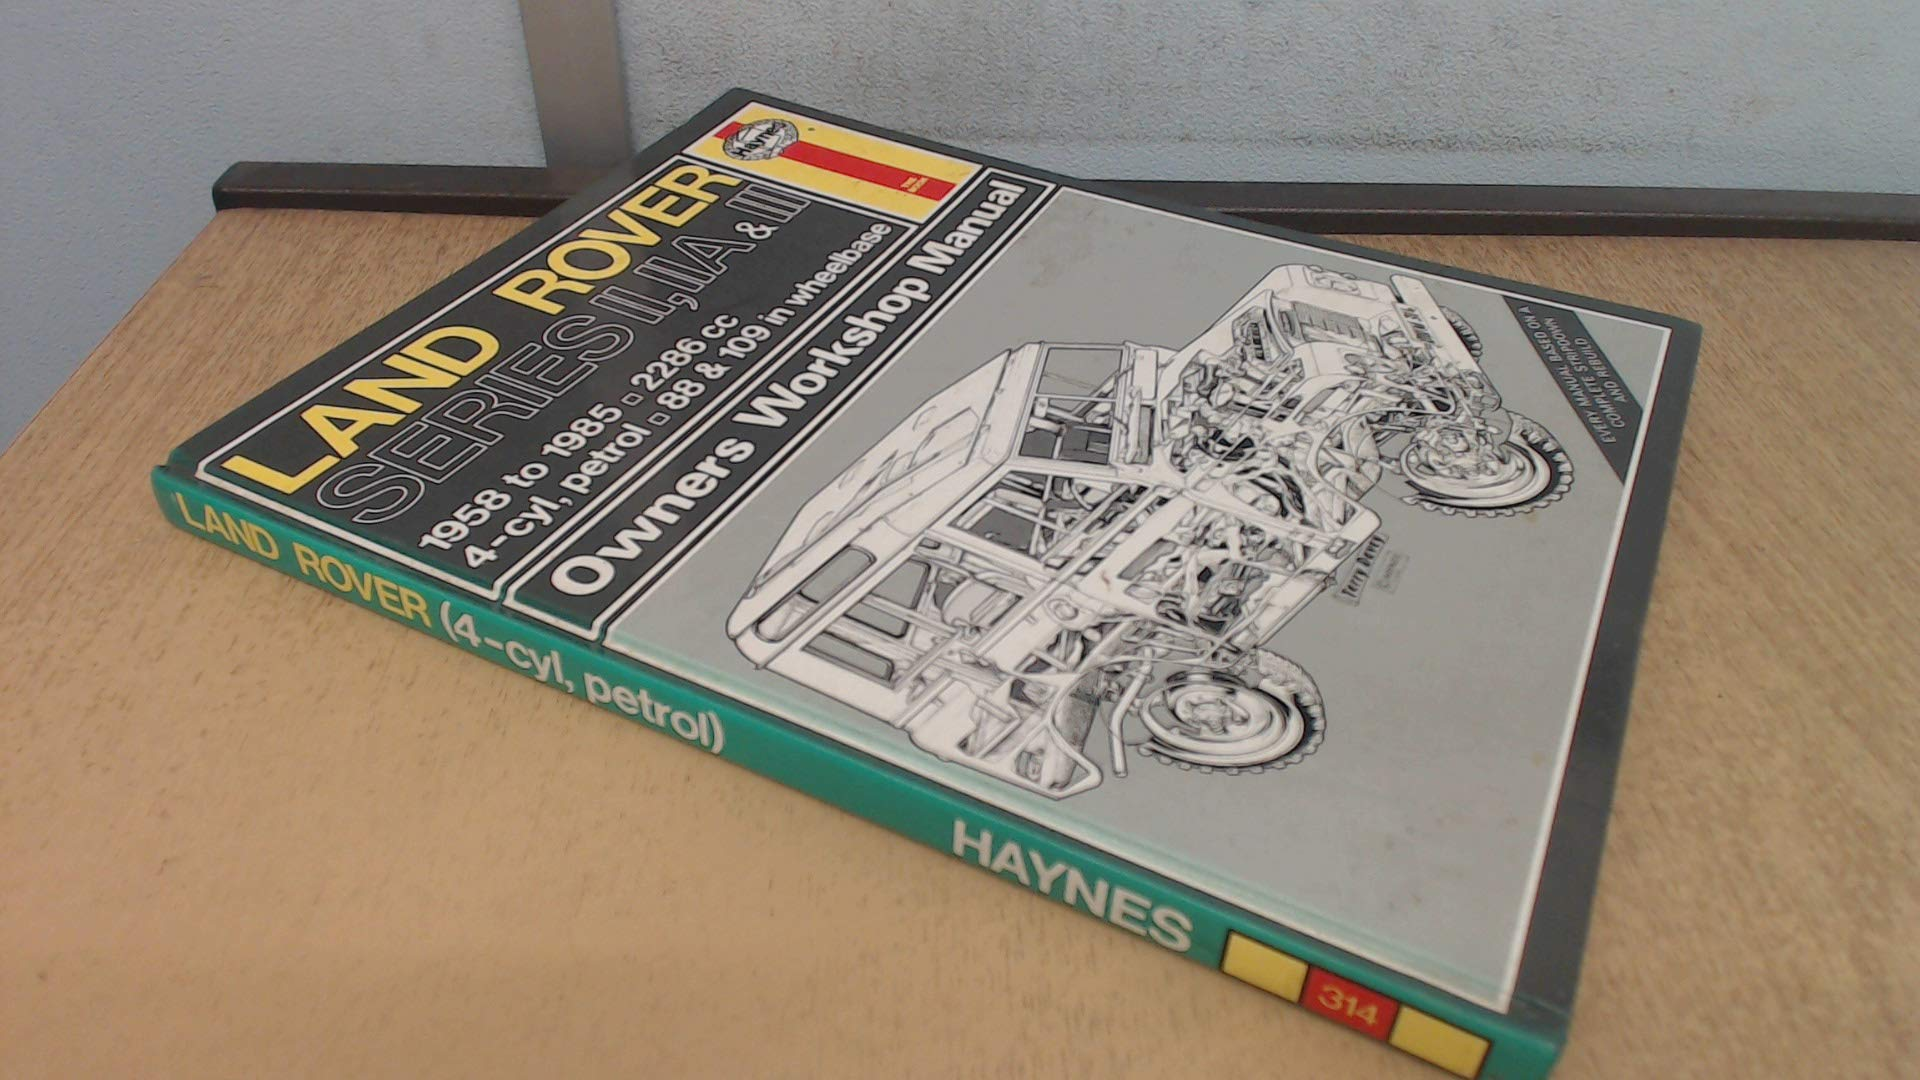 Land Rover Series 2, 2A and 3 1958-85 Owner's Workshop Manual (Owners  workshop manual / Haynes): Amazon.co.uk: J. H. Haynes, Marcus Daniels:  9781850101826: ...